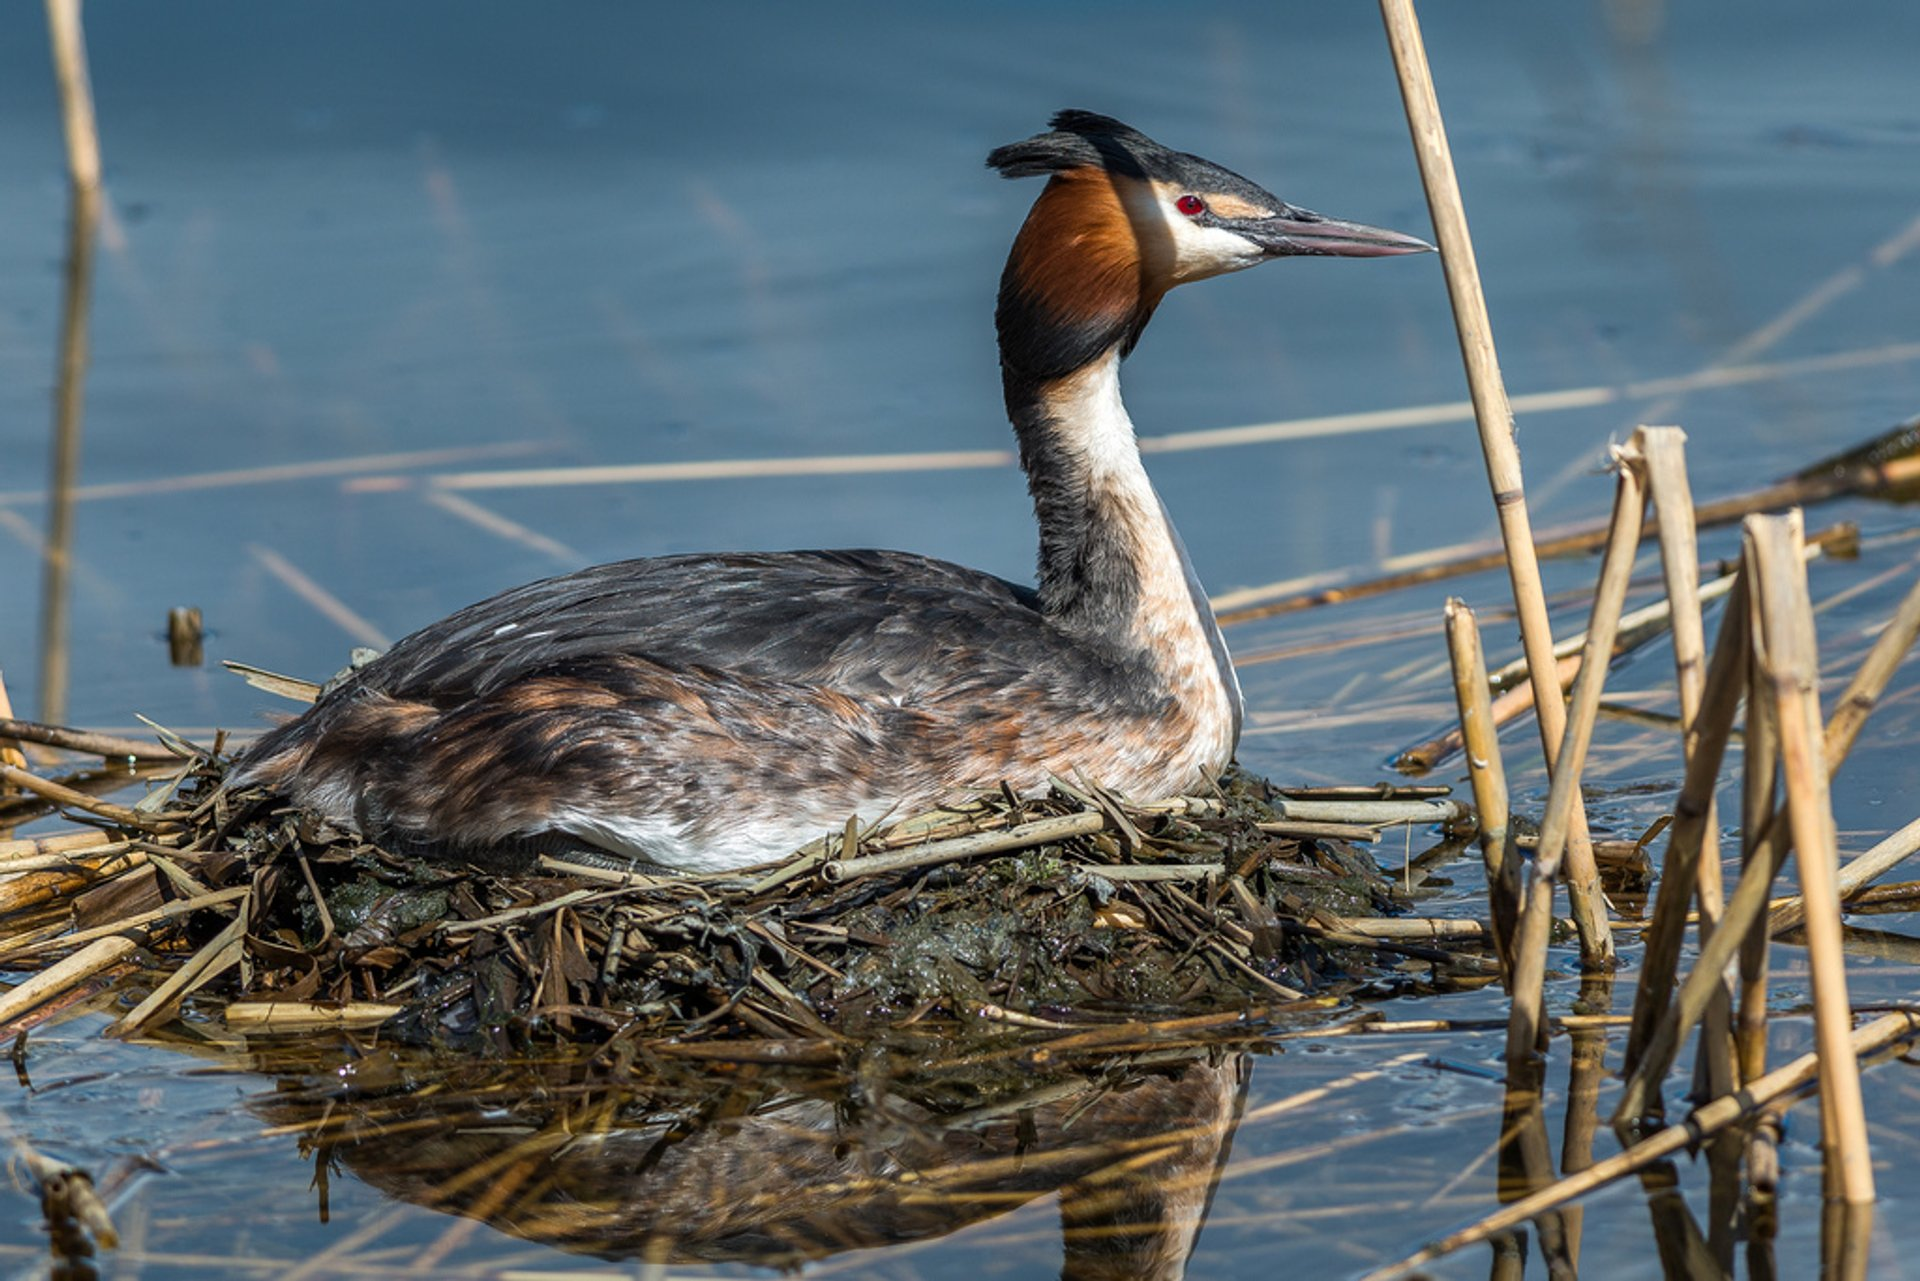 Great crested grebe 2020